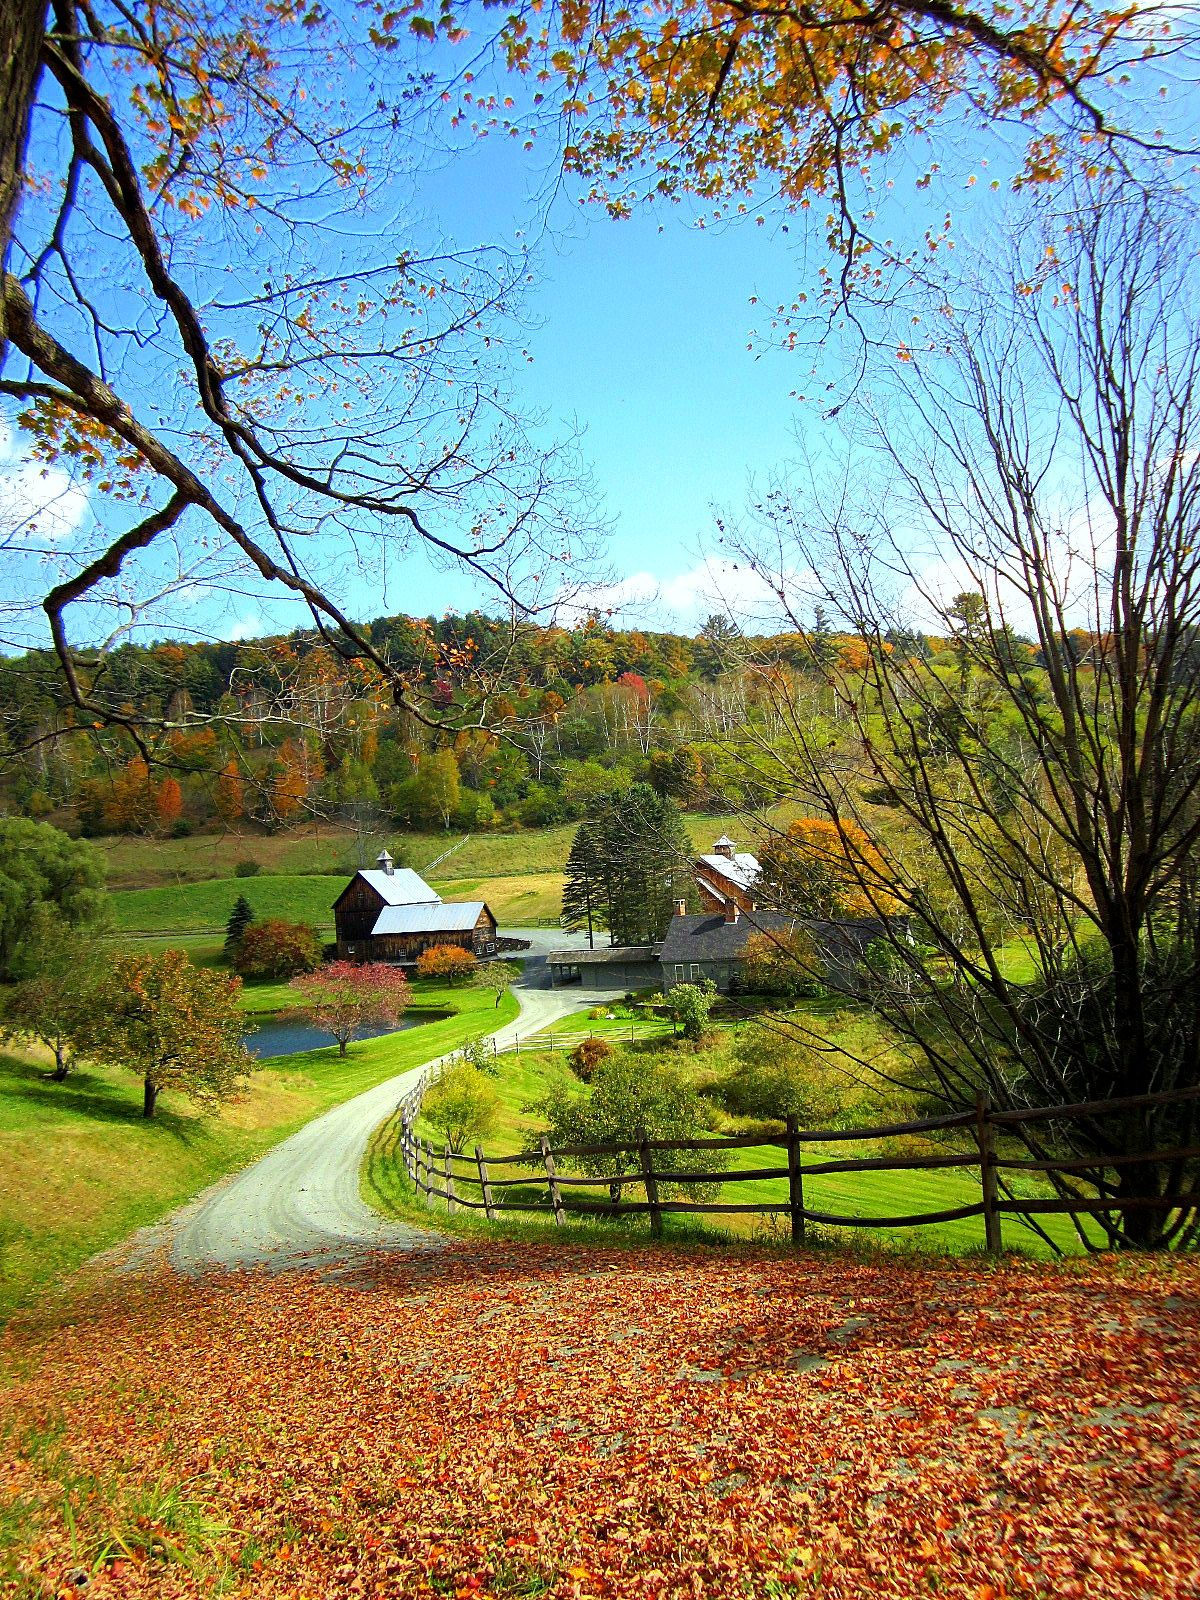 Near Woodstock Vt With Images Scenery Photography Autumn Scenery Scenic Photos